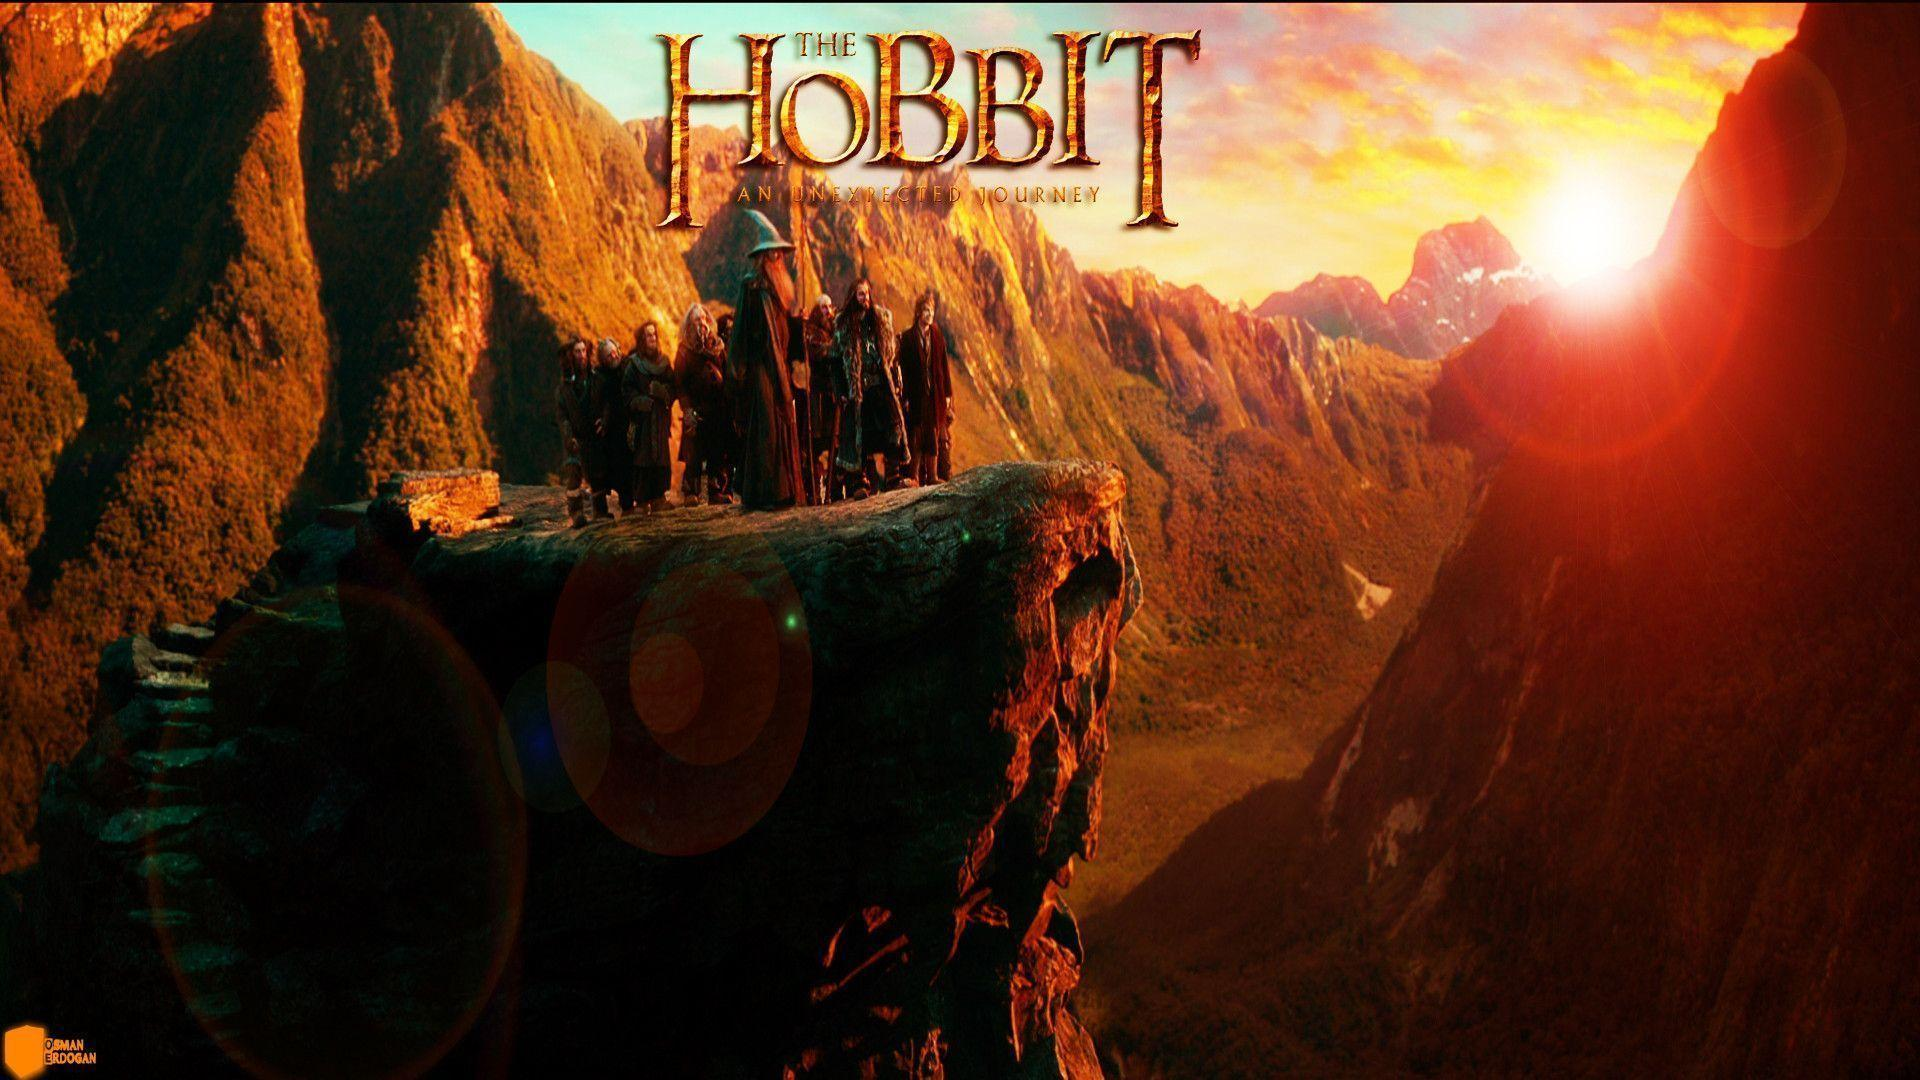 The Hobbit Wallpaper 15 - HD Wallpaper (High Definition)